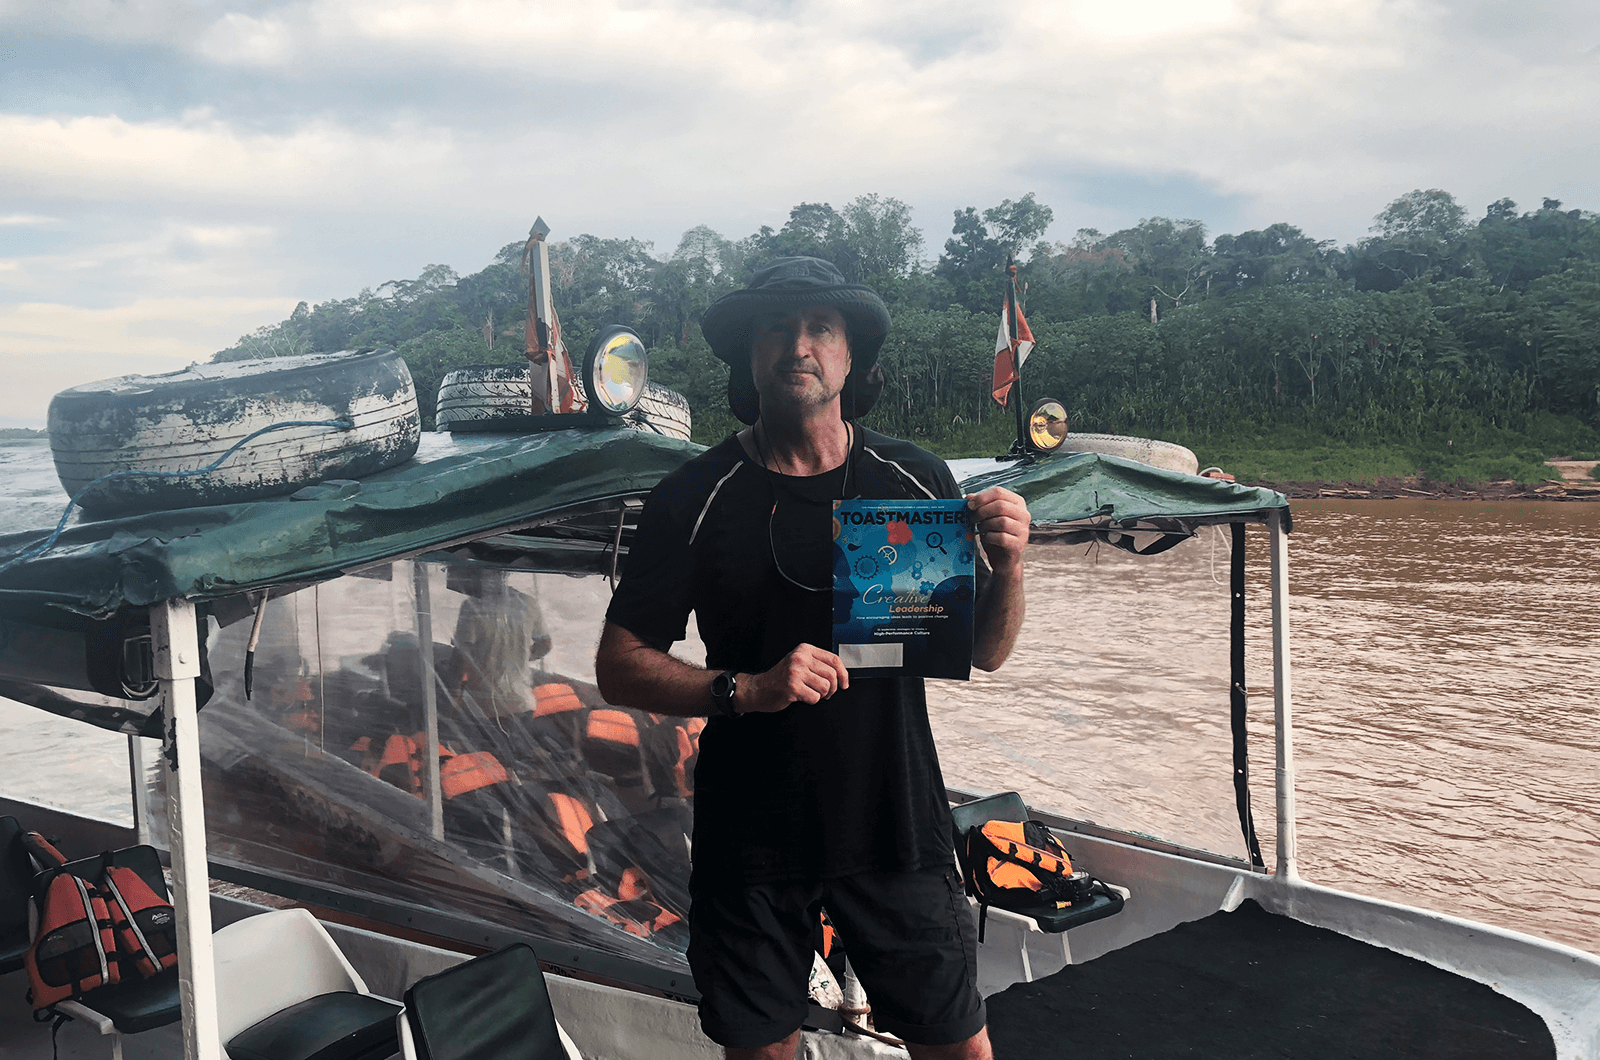 Ray Sweeney, CC, CL, of Marbella, Spain, travels to a remote ecolodge down the Amazon river in the Amazon Rain Forest of Peru.